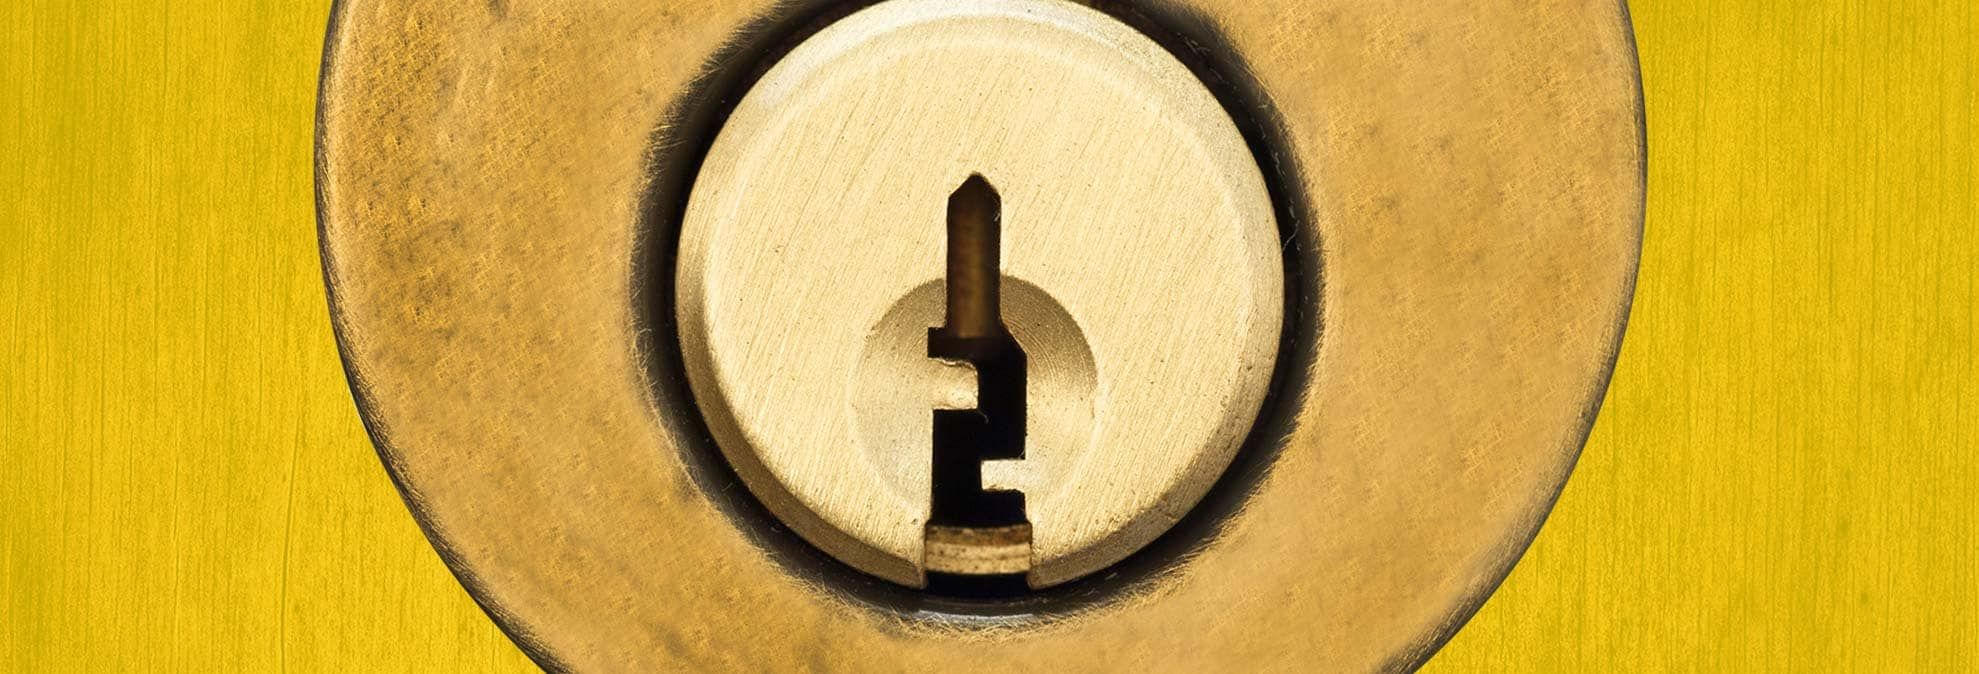 In This Review Of The Best And Worst Door Locks From Consumer Reports 39 Tests You 39 Ll Find The Locks That Resis Door Locks Diy Home Security Home Safety